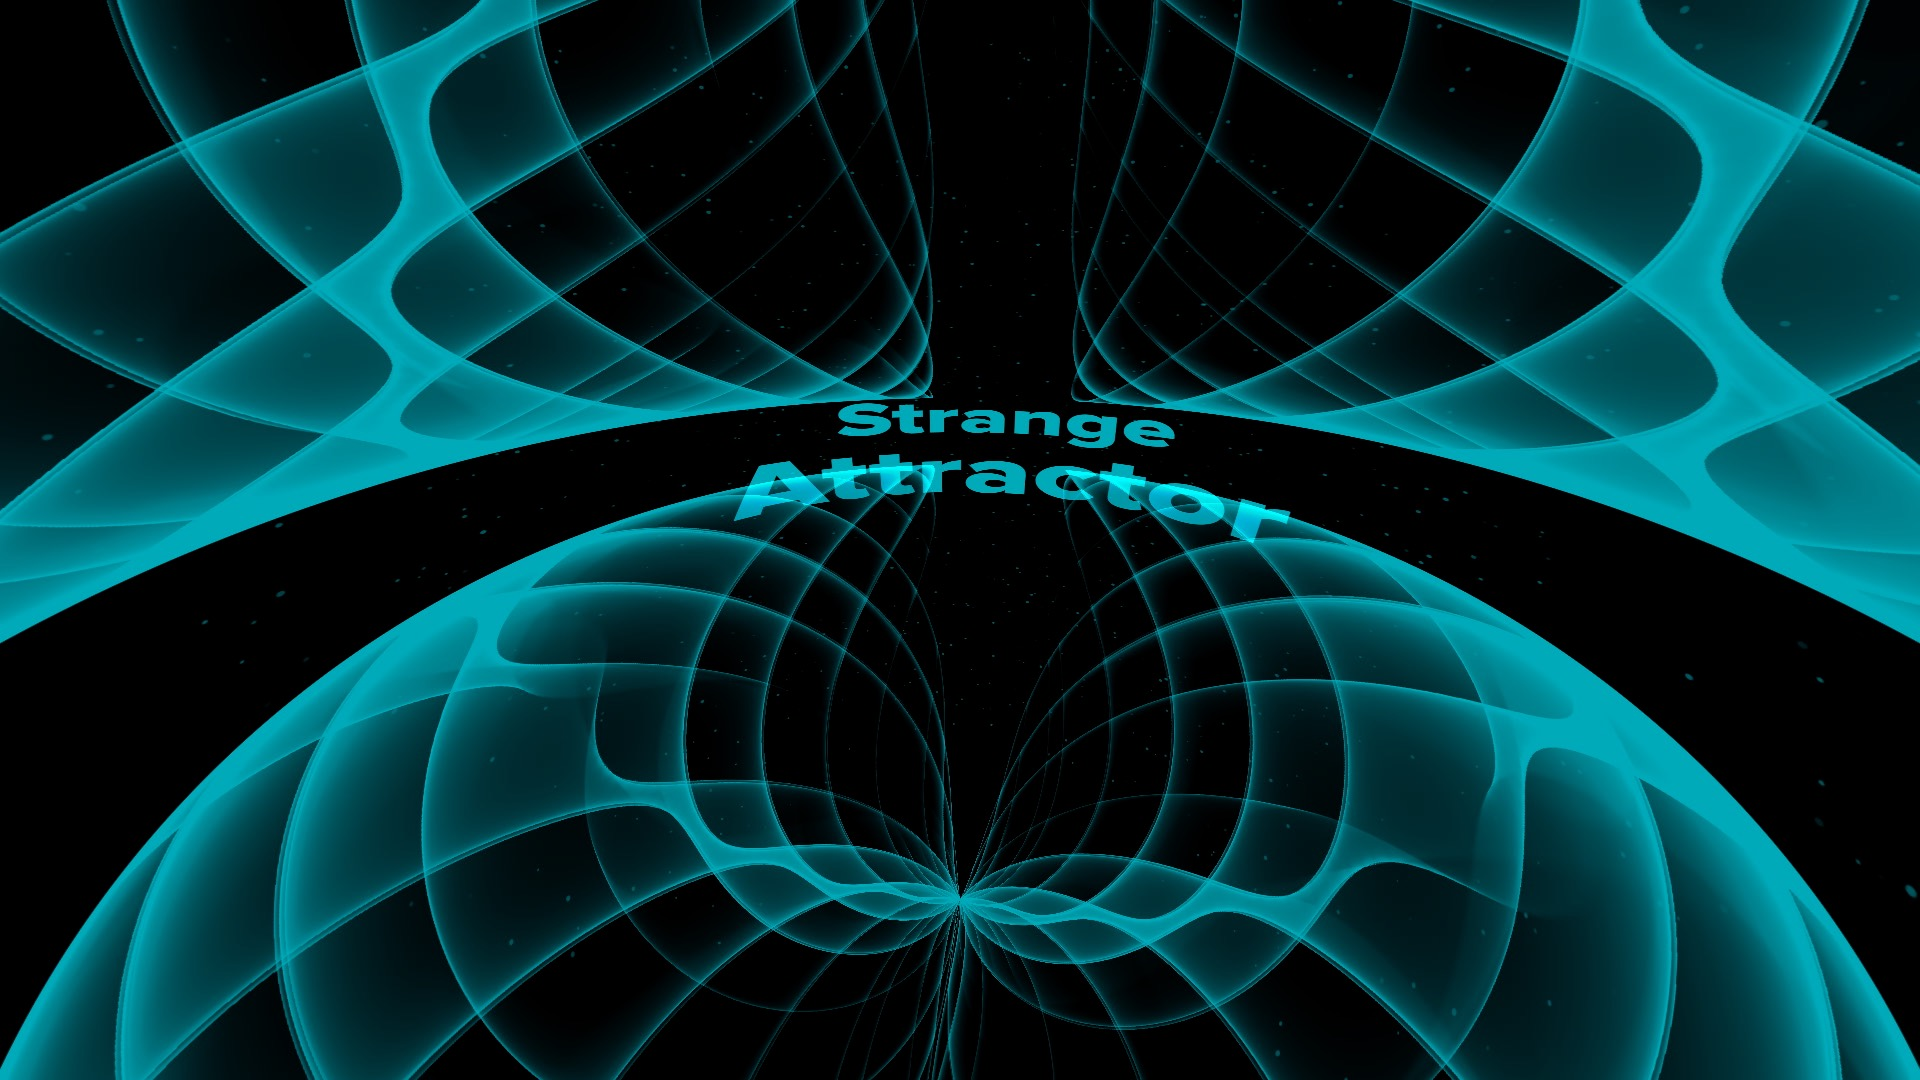 Strange Attractor User Guide